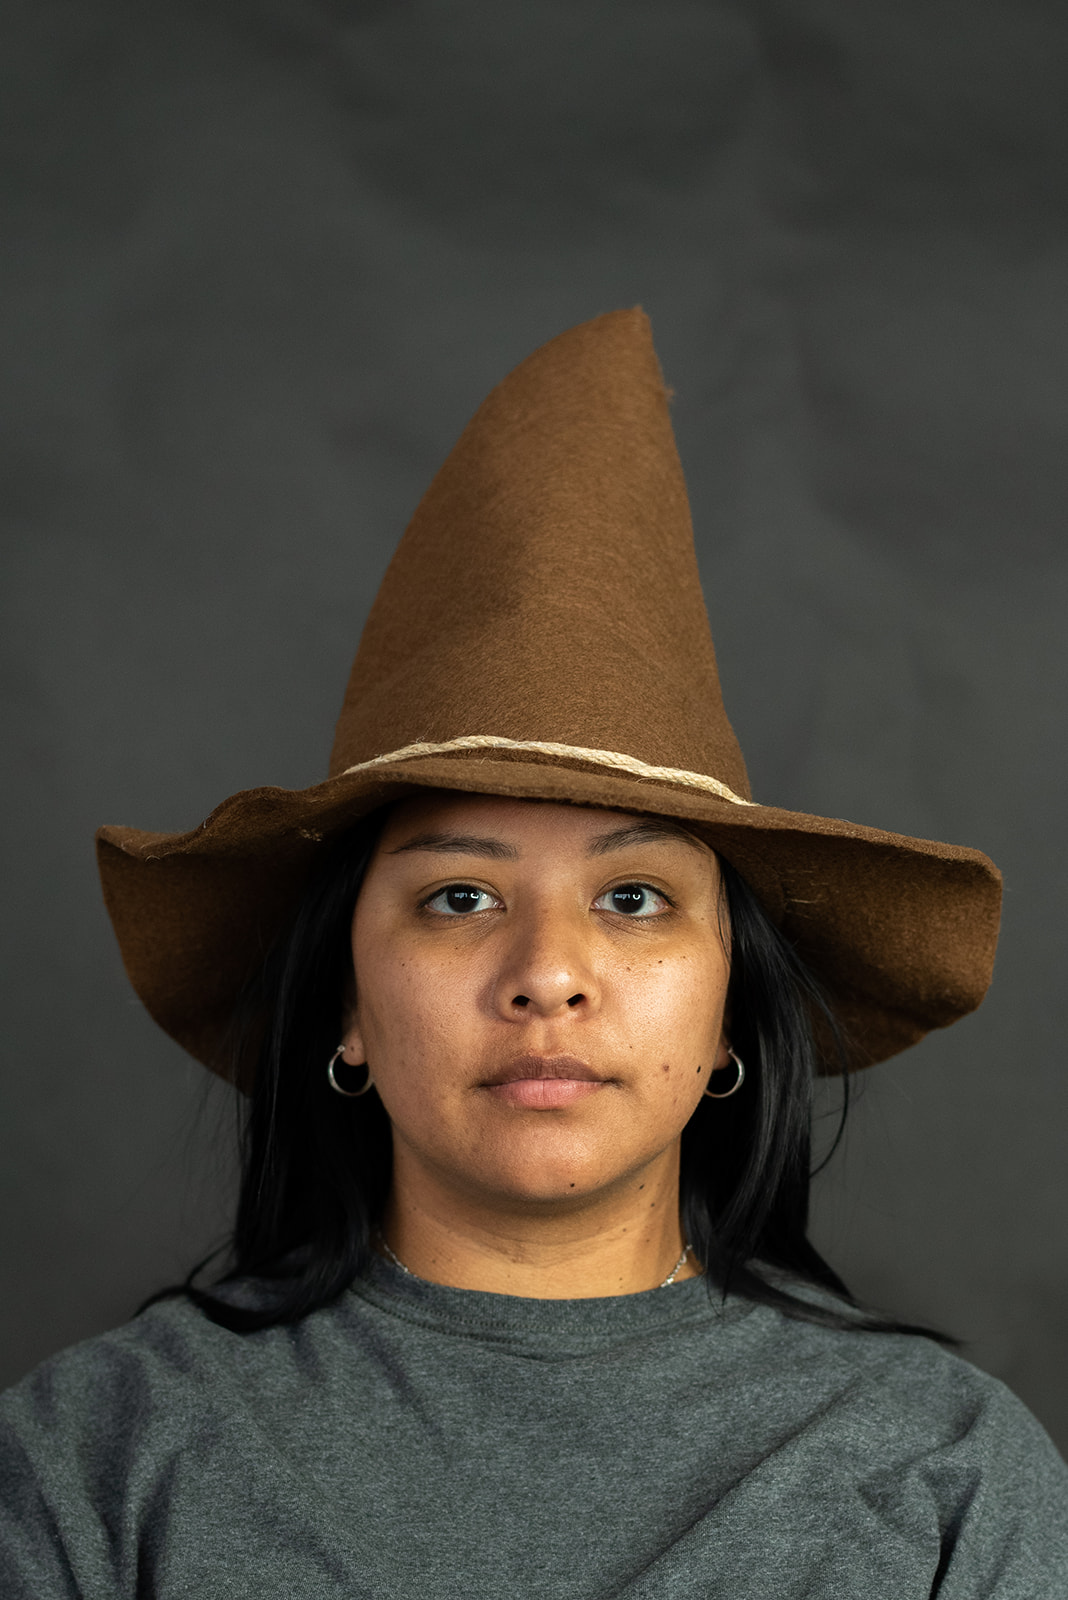 thumbnail 12 - Adult Scarecrow Hat Deluxe Felt Oktoberfest Wizard Witch Hillbilly Hat Costume